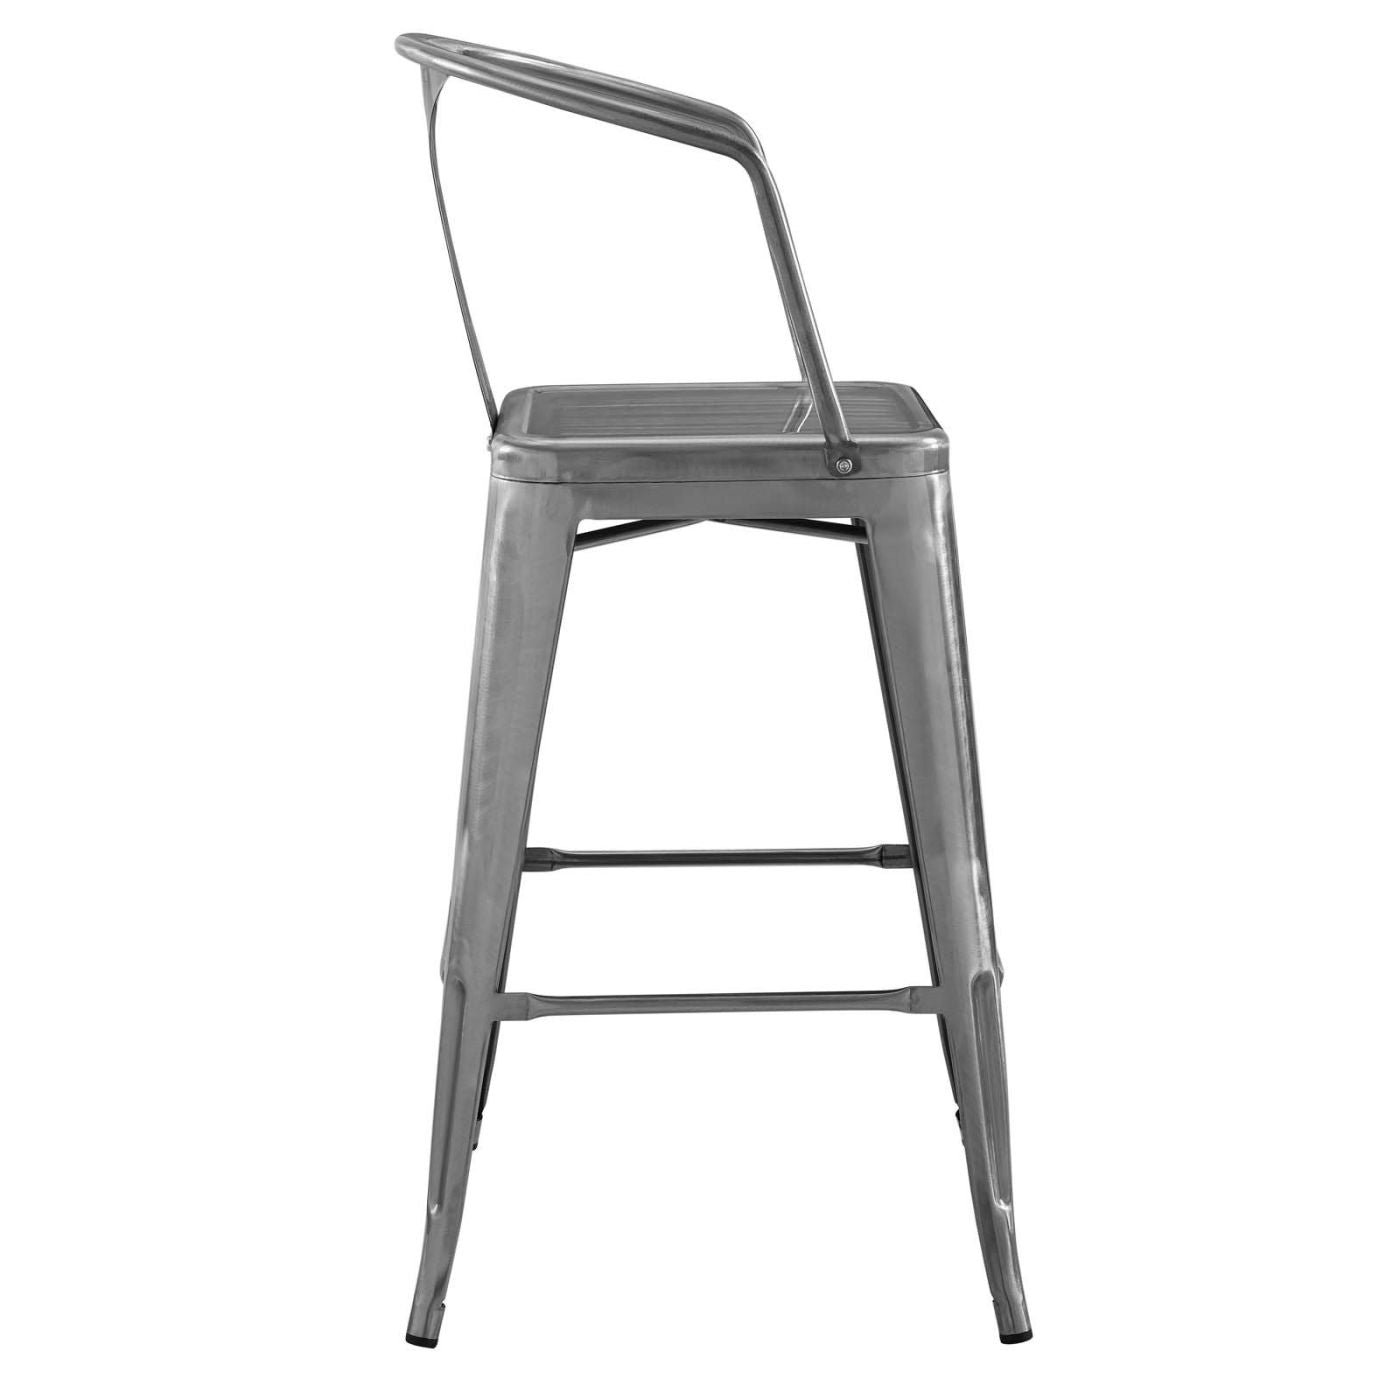 ... Promenade Cafe And Bistro Style Bar Stool Powder Coated Steel Chair ...  sc 1 st  Contemporary Furniture Warehouse & Modway EEI-2817-BLK Promenade Cafe and Bistro Style Steel Bar Chair